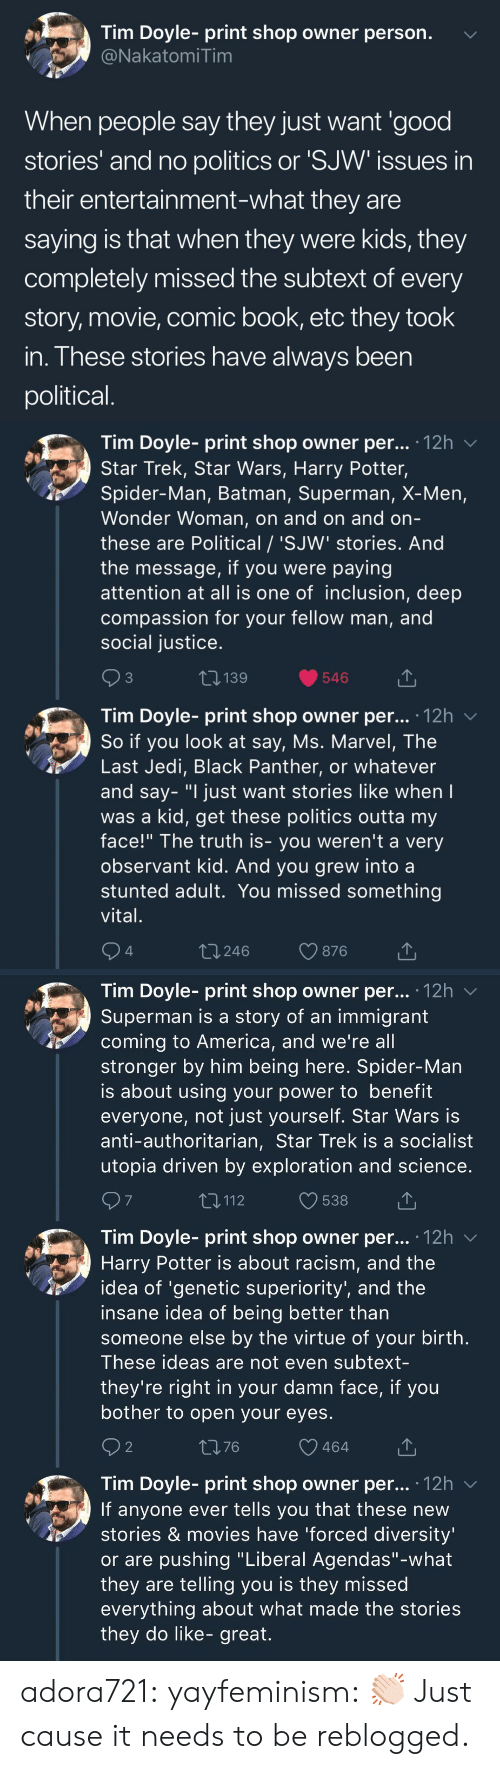 "X-Men: Tim Doyle- print shop owner person.  NakatomiTim  When people say they just want 'good  stories' and no politics or 'SJW issues in  their entertainment-what they are  saying is that when they were kids, they  completely missed the subtext of every  story, movie, comic book, etc they took  in. These stories have always been  political   Tim Doyle- print shop owner per... 12h v  Star Trek, Star Wars, Harry Potter,  Spider-Man, Batman, Superman, X-Men,  Wonder Woman, on and on and orn  these are Political / 'SJW' stories. And  the message, if you were paying  attention at all is one of inclusion, deep  compassion for your fellow man, and  social justice  3  139  546  Tim Dovle-print shop owner per... 12h  So if you look at say, Ms. Marvel, The  Last Jedi, Black Panther, or whatever  and say- ""I just want stories like when  was a kid, get these politics outta my  face!"" The truth is- you weren't a very  observant kid. And you grew into a  stunted adult. You missed something  vital  4  t 246  876   Tim Doyle- print shop owner per... '12h v  Superman is a story of an immigrant  coming to America, and we're all  stronger by him being here. Spider-Man  is about using your power to benefit  everyone, not just yourself. Star Wars is  anti-authoritarian, Star Trek is a socialist  utopia driven by exploration and science  7  T,112  538  Tim Doyle- print shop owner per... .12h  Harry Potter is about racism, and the  idea of 'genetic superiority', and the  insane idea of being better than  someone else by the virtue of your birth  These ideas are not even subtext-  they're right in your damn face, if you  bother to open your eyes  2  1376  464  Tim Doyle- print shop owner per... 12h v  If anyone ever tells you that these new  stories & movies have 'forced diversity  or are pushing ""Liberal Agendas""-what  they are telling you is they missed  everything about what made the stories  they do like- great. adora721: yayfeminism: 👏🏻 Just cause it needs to be reblogged."